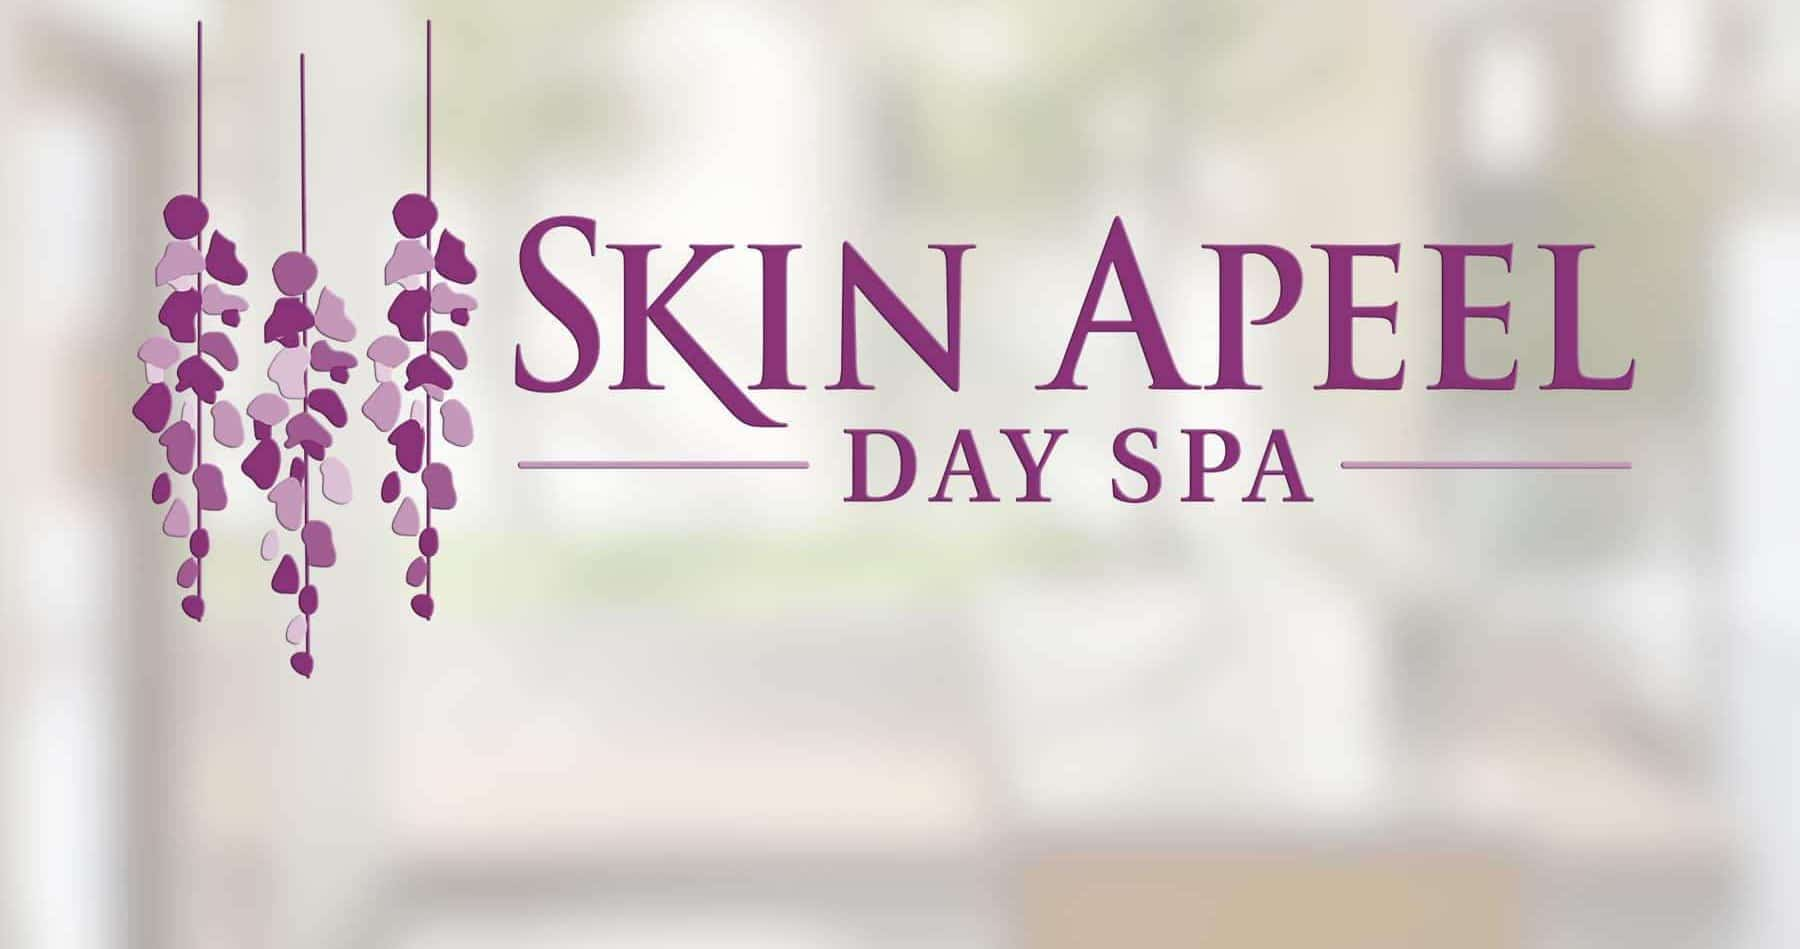 Skin Apeel Day Spa Celebrates 26 Years!